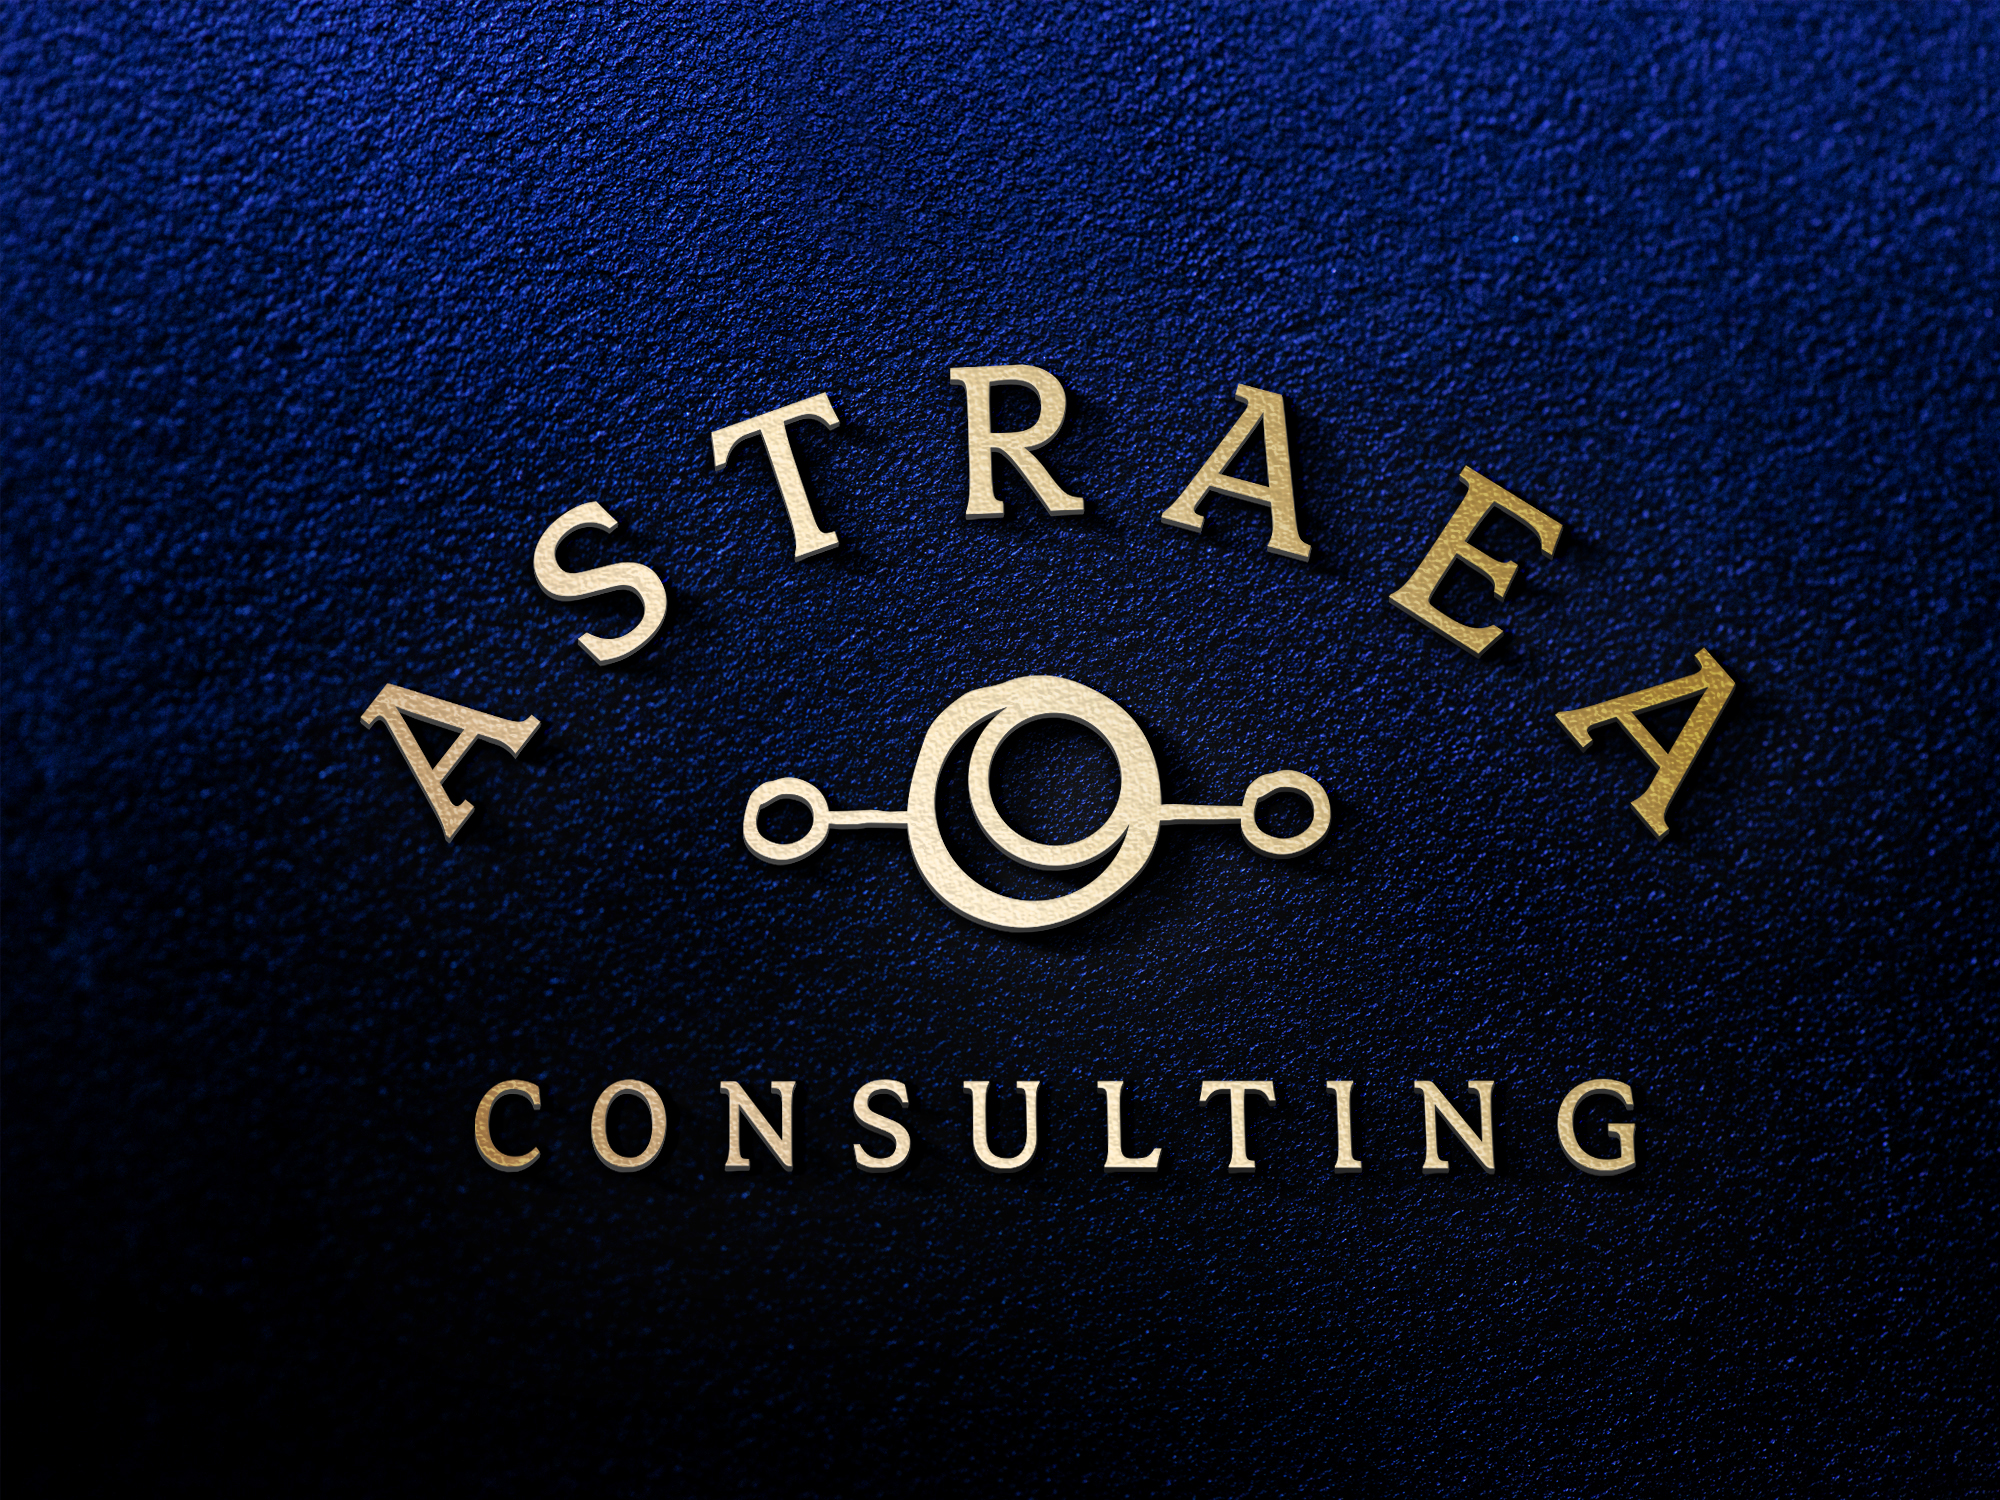 Astraea Consulting logo wall sign